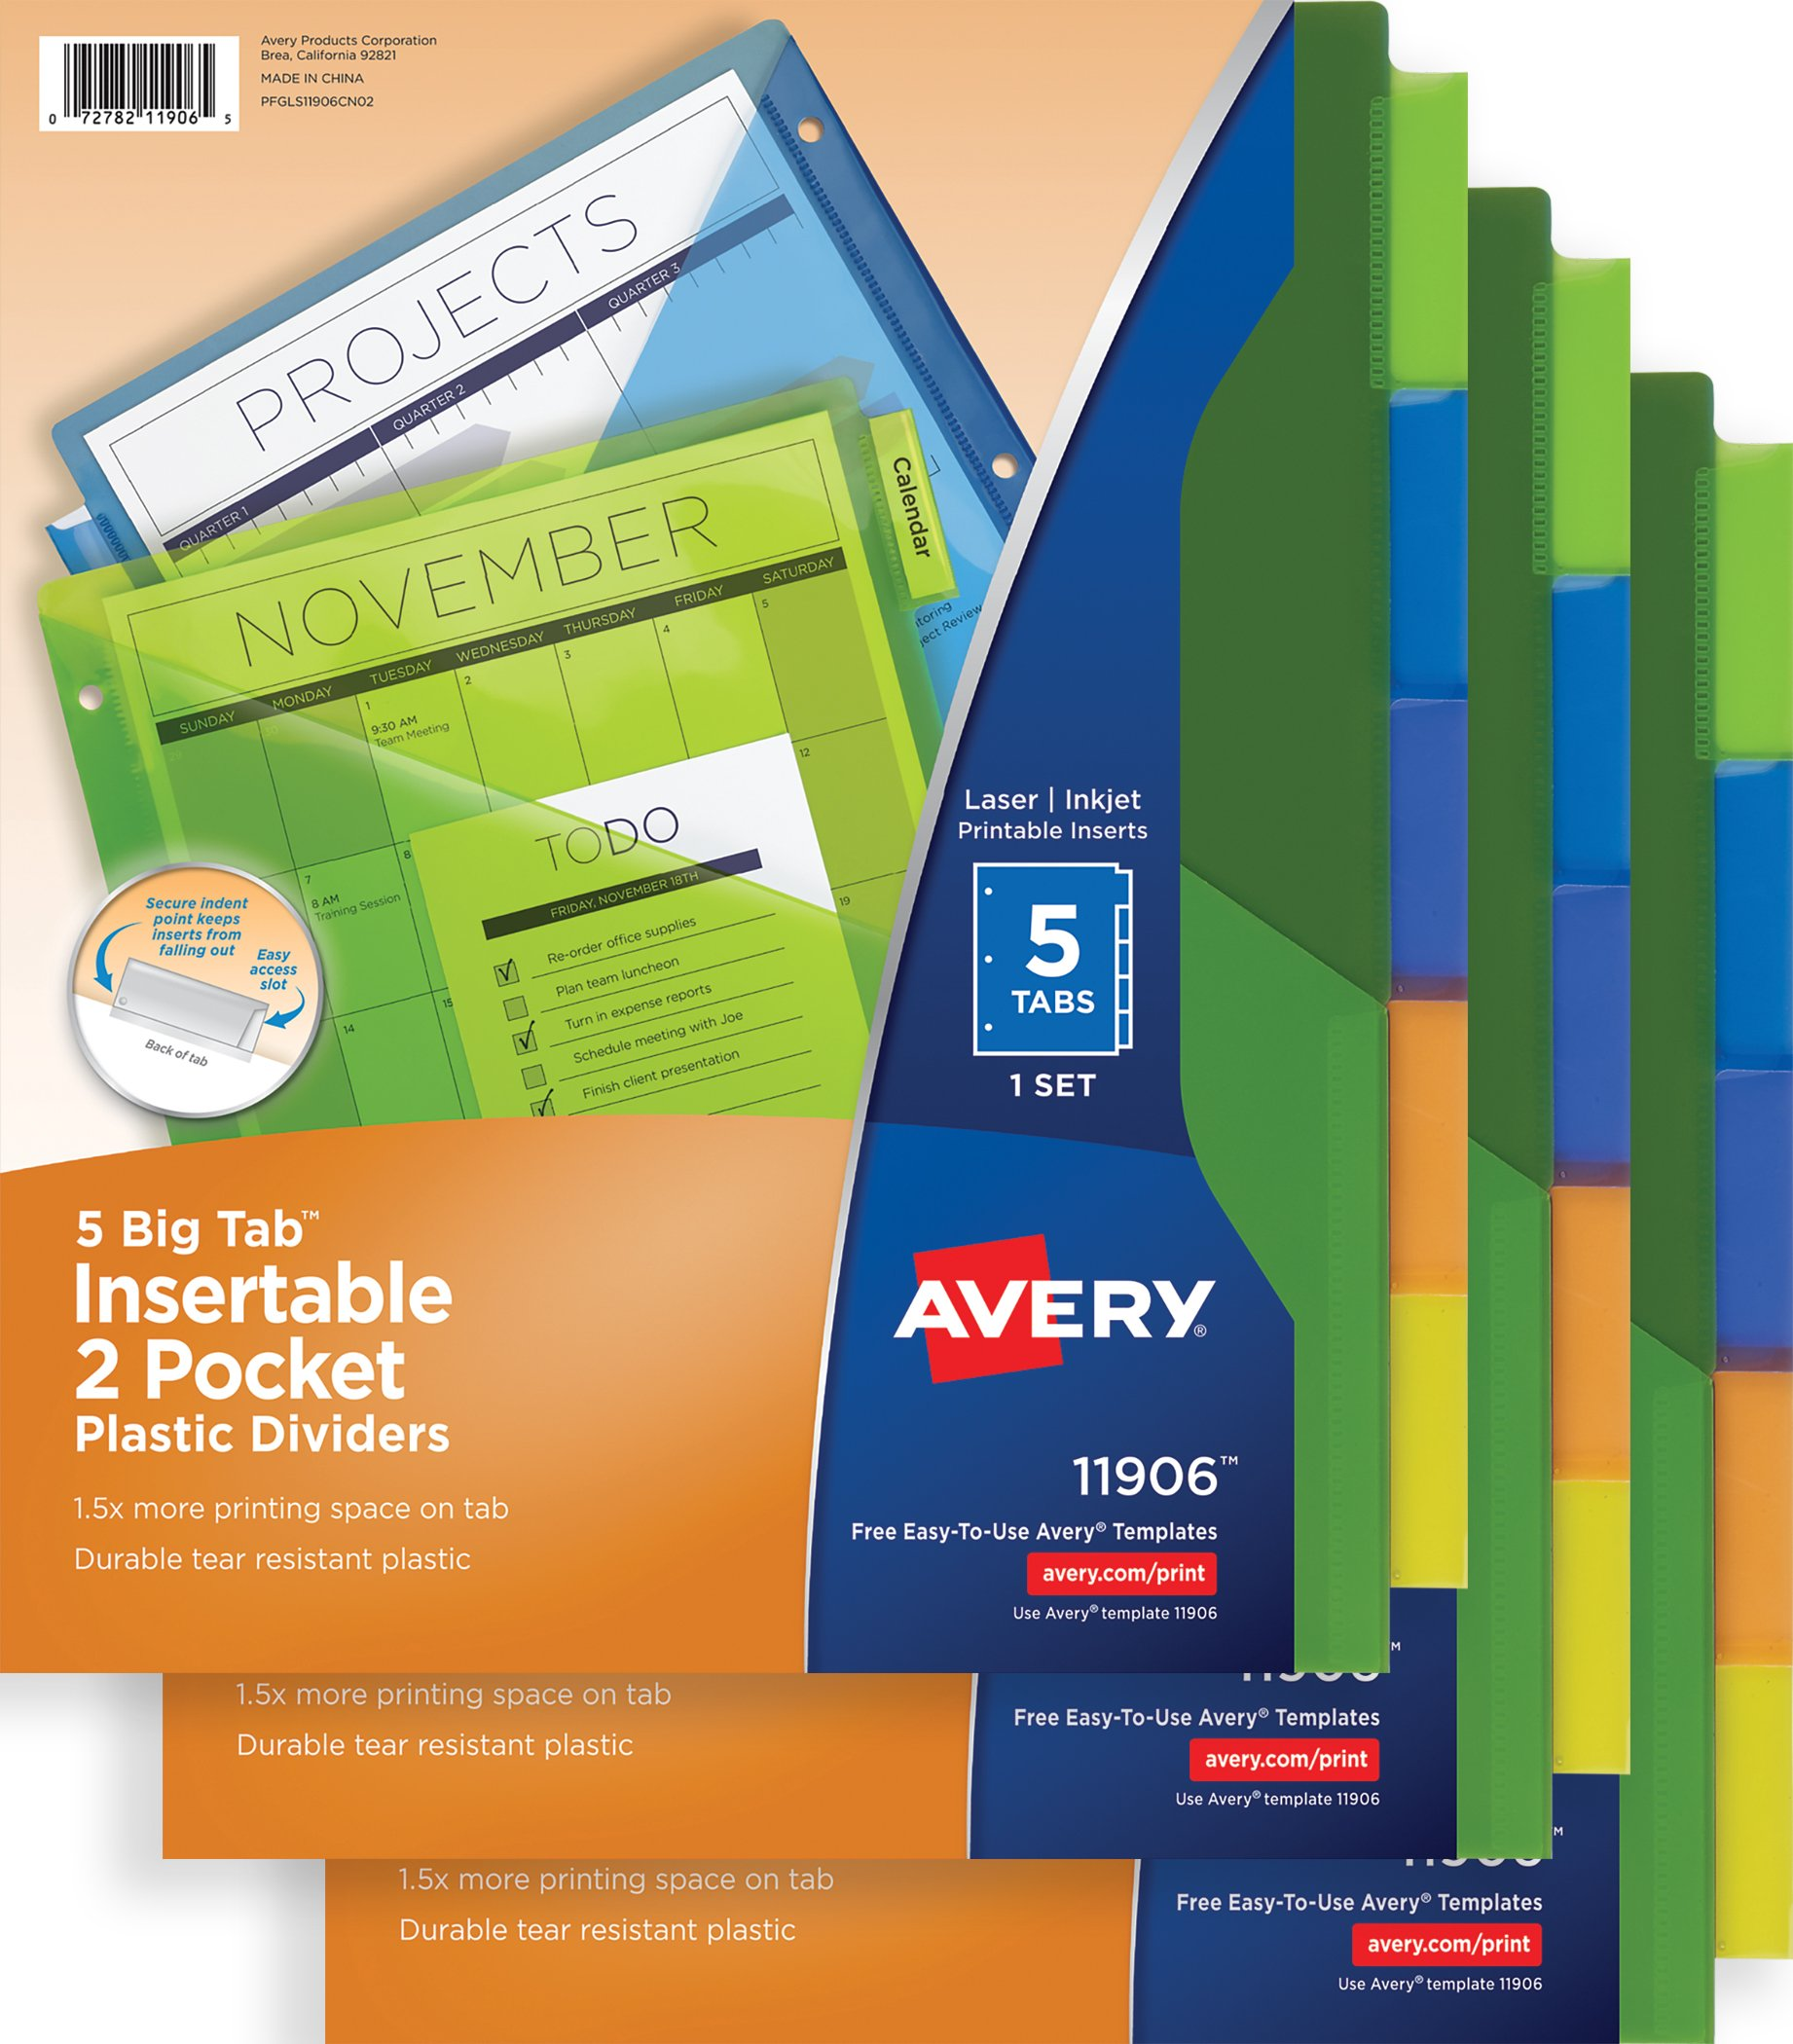 Avery Big Tab Insertable Two-Pocket Plastic Dividers, 5-Tab Set, Multicolor, Multi Pack of 3 Sets (11906)